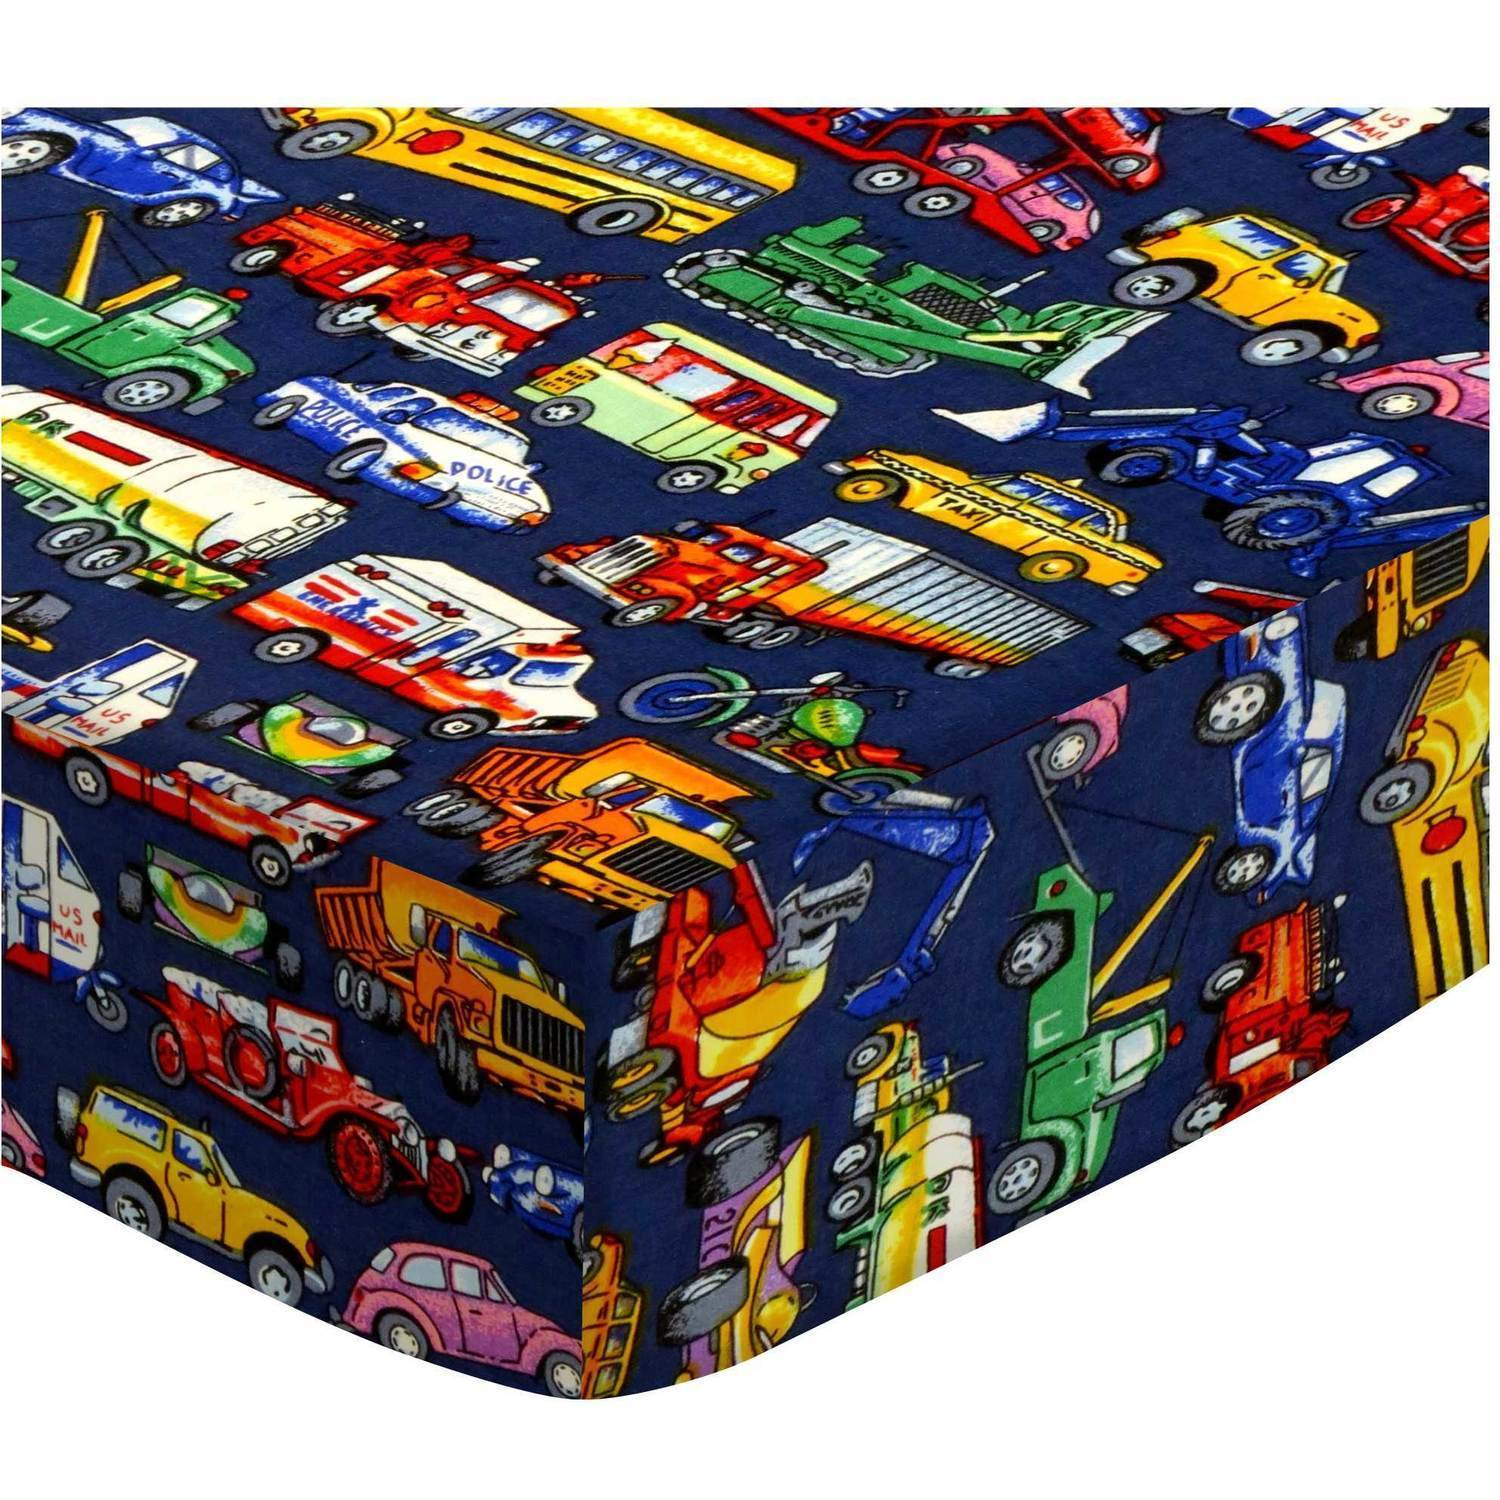 SheetWorld Fitted Pack N Play (Graco Square Playard) Sheet - Vehicles Galore